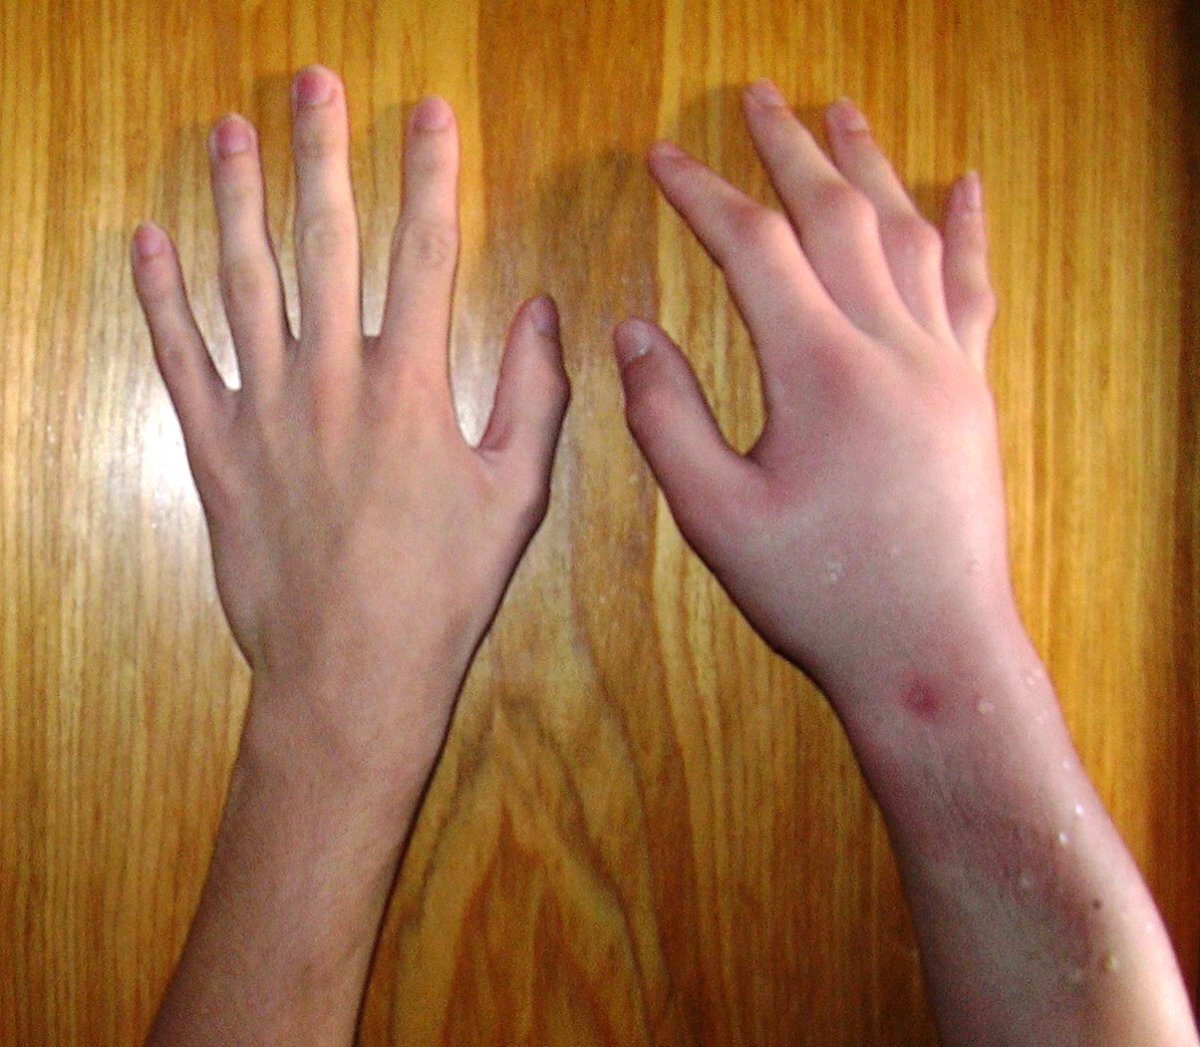 Picture Of A Bee Sting Reaction. Compare the right hand to the left.  There is lots of swelling in the right hand.